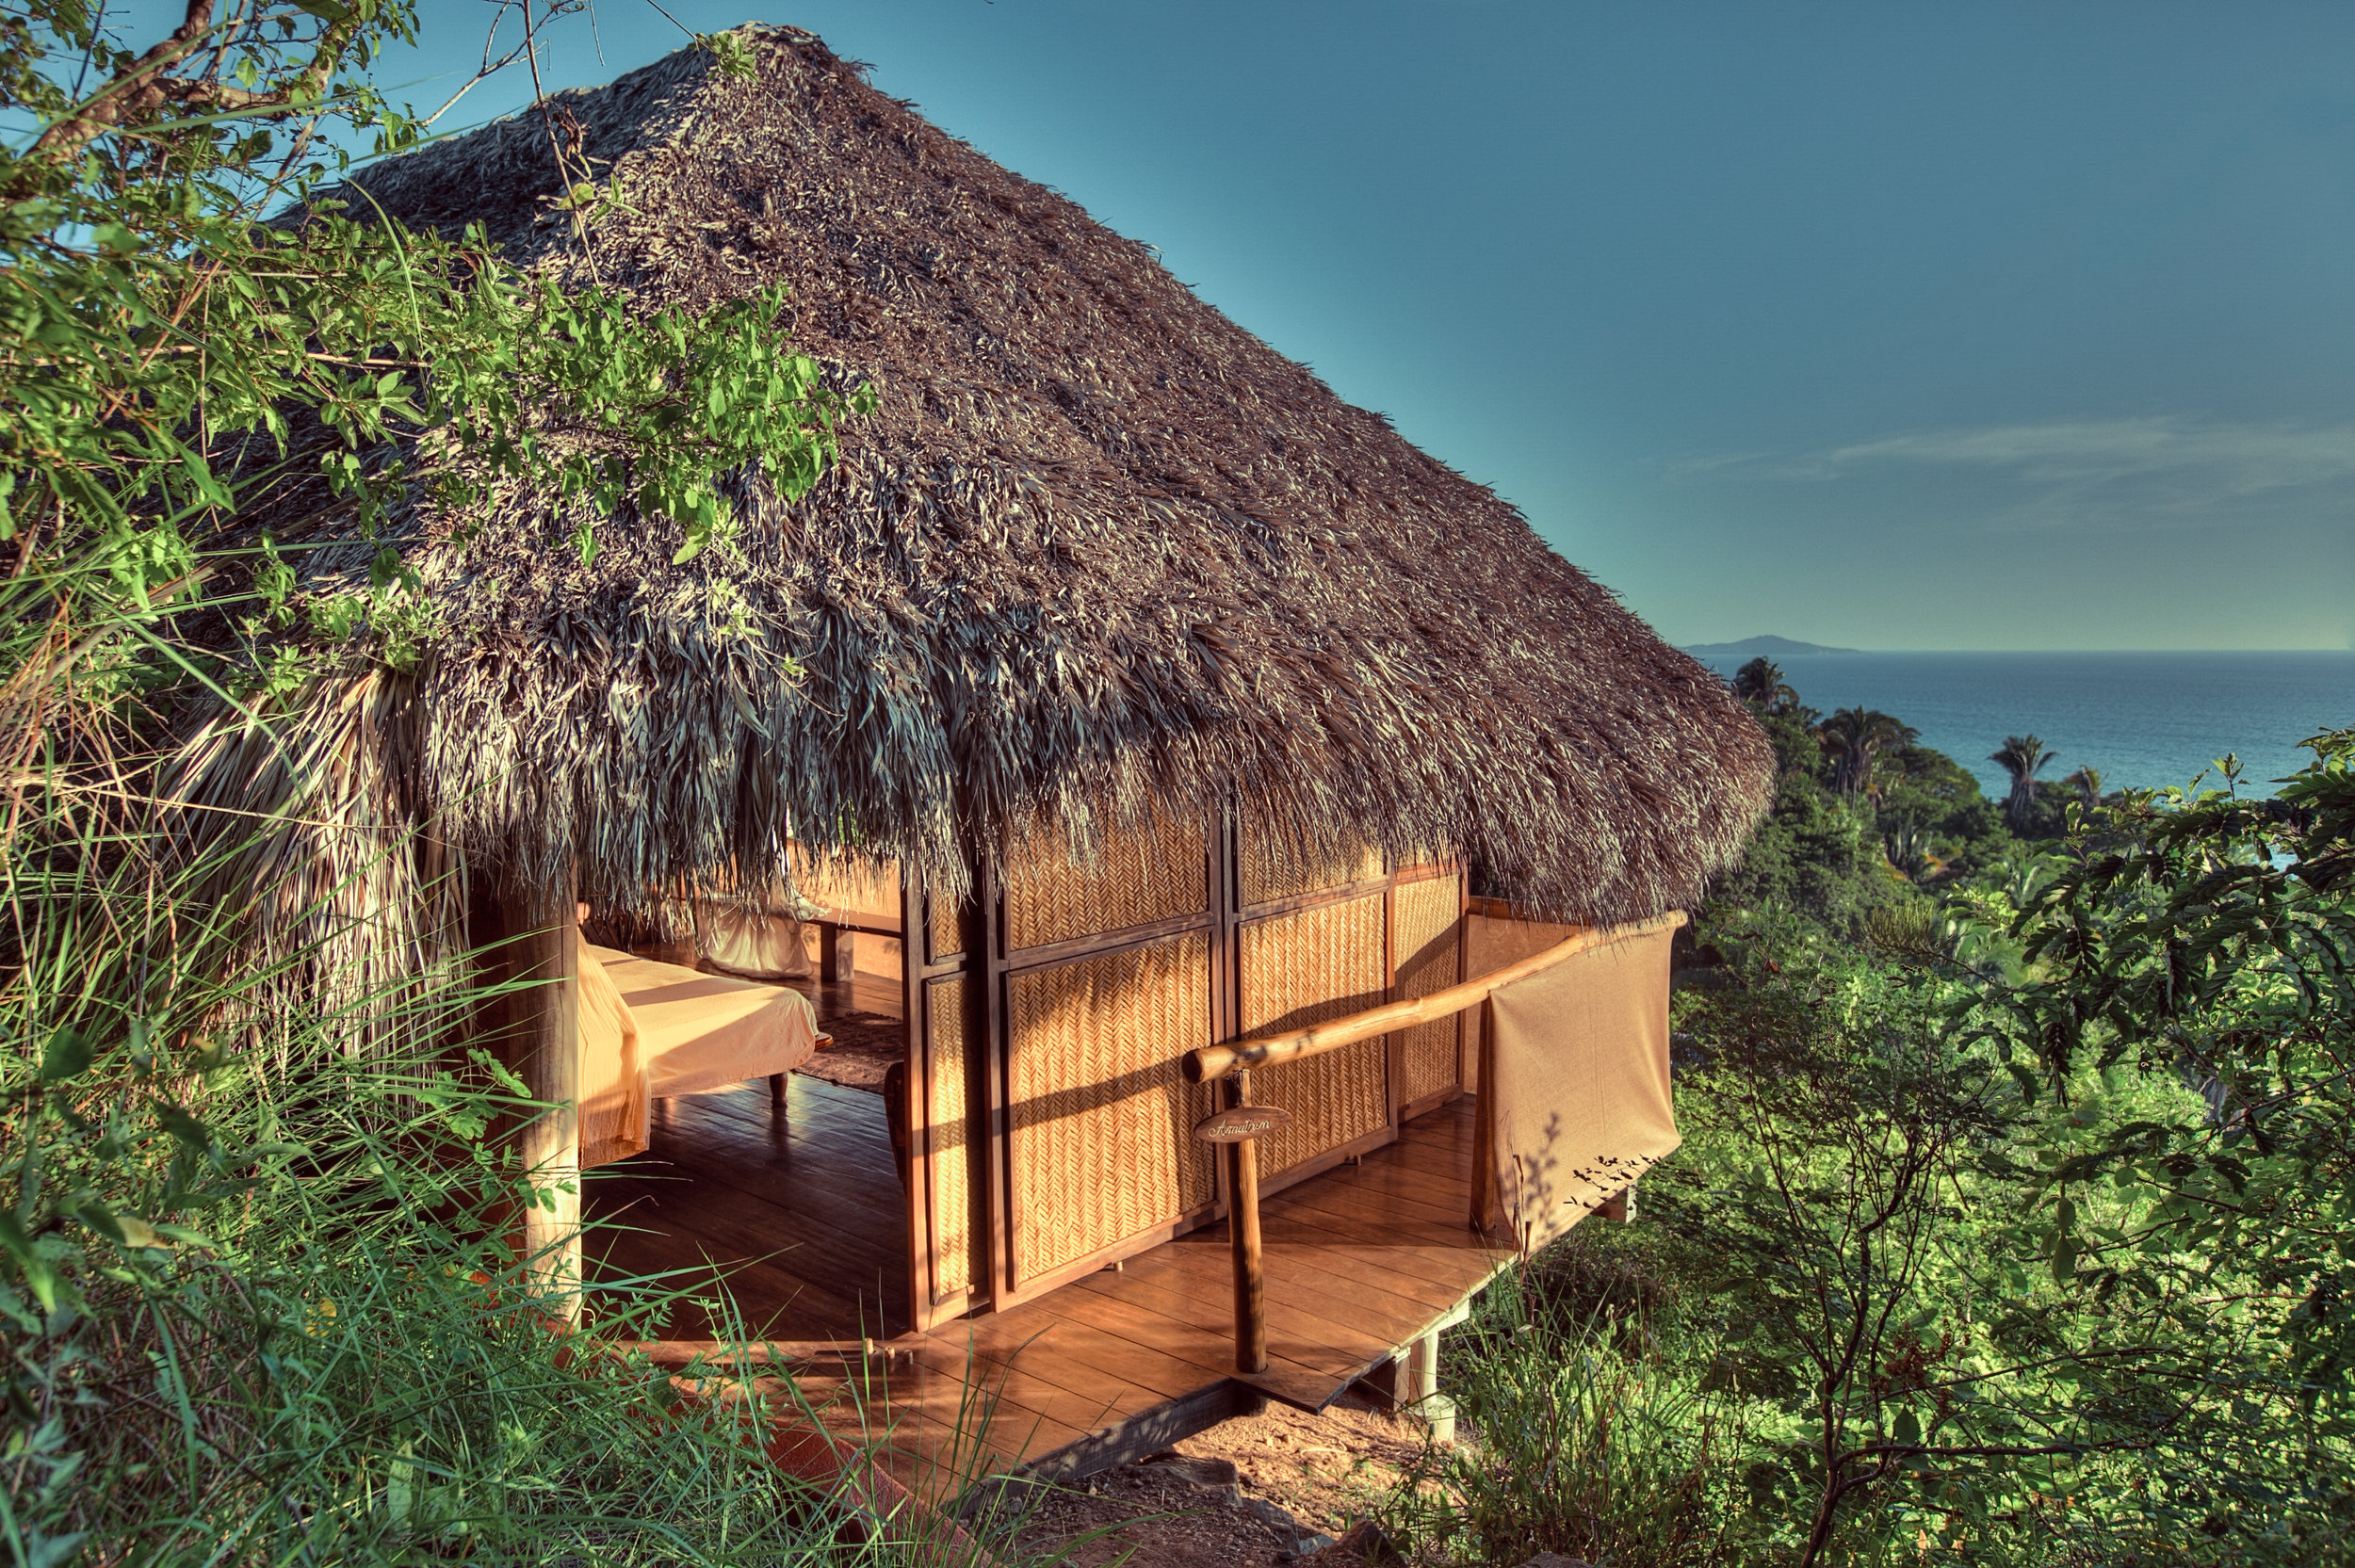 Some of the best views in all of Mexico - right from your cabana. All open air and private.